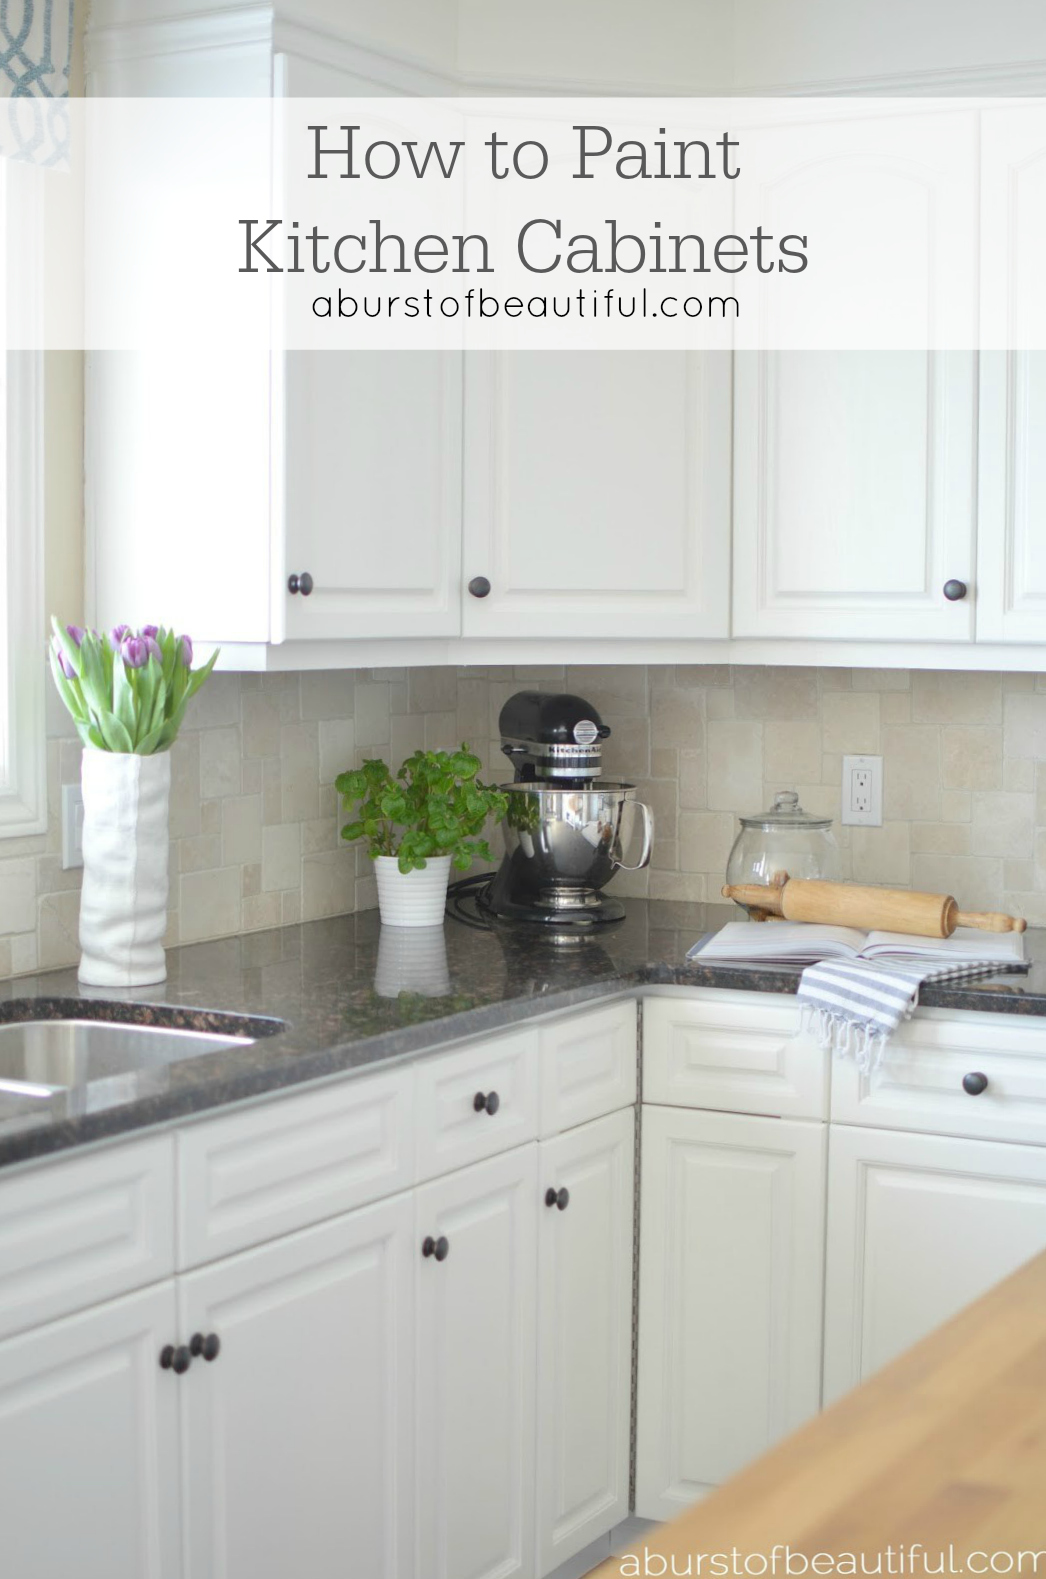 Interior How To Paint Kitchen Cabinets to paint kitchen cabinets a burst of beautiful how beautiful